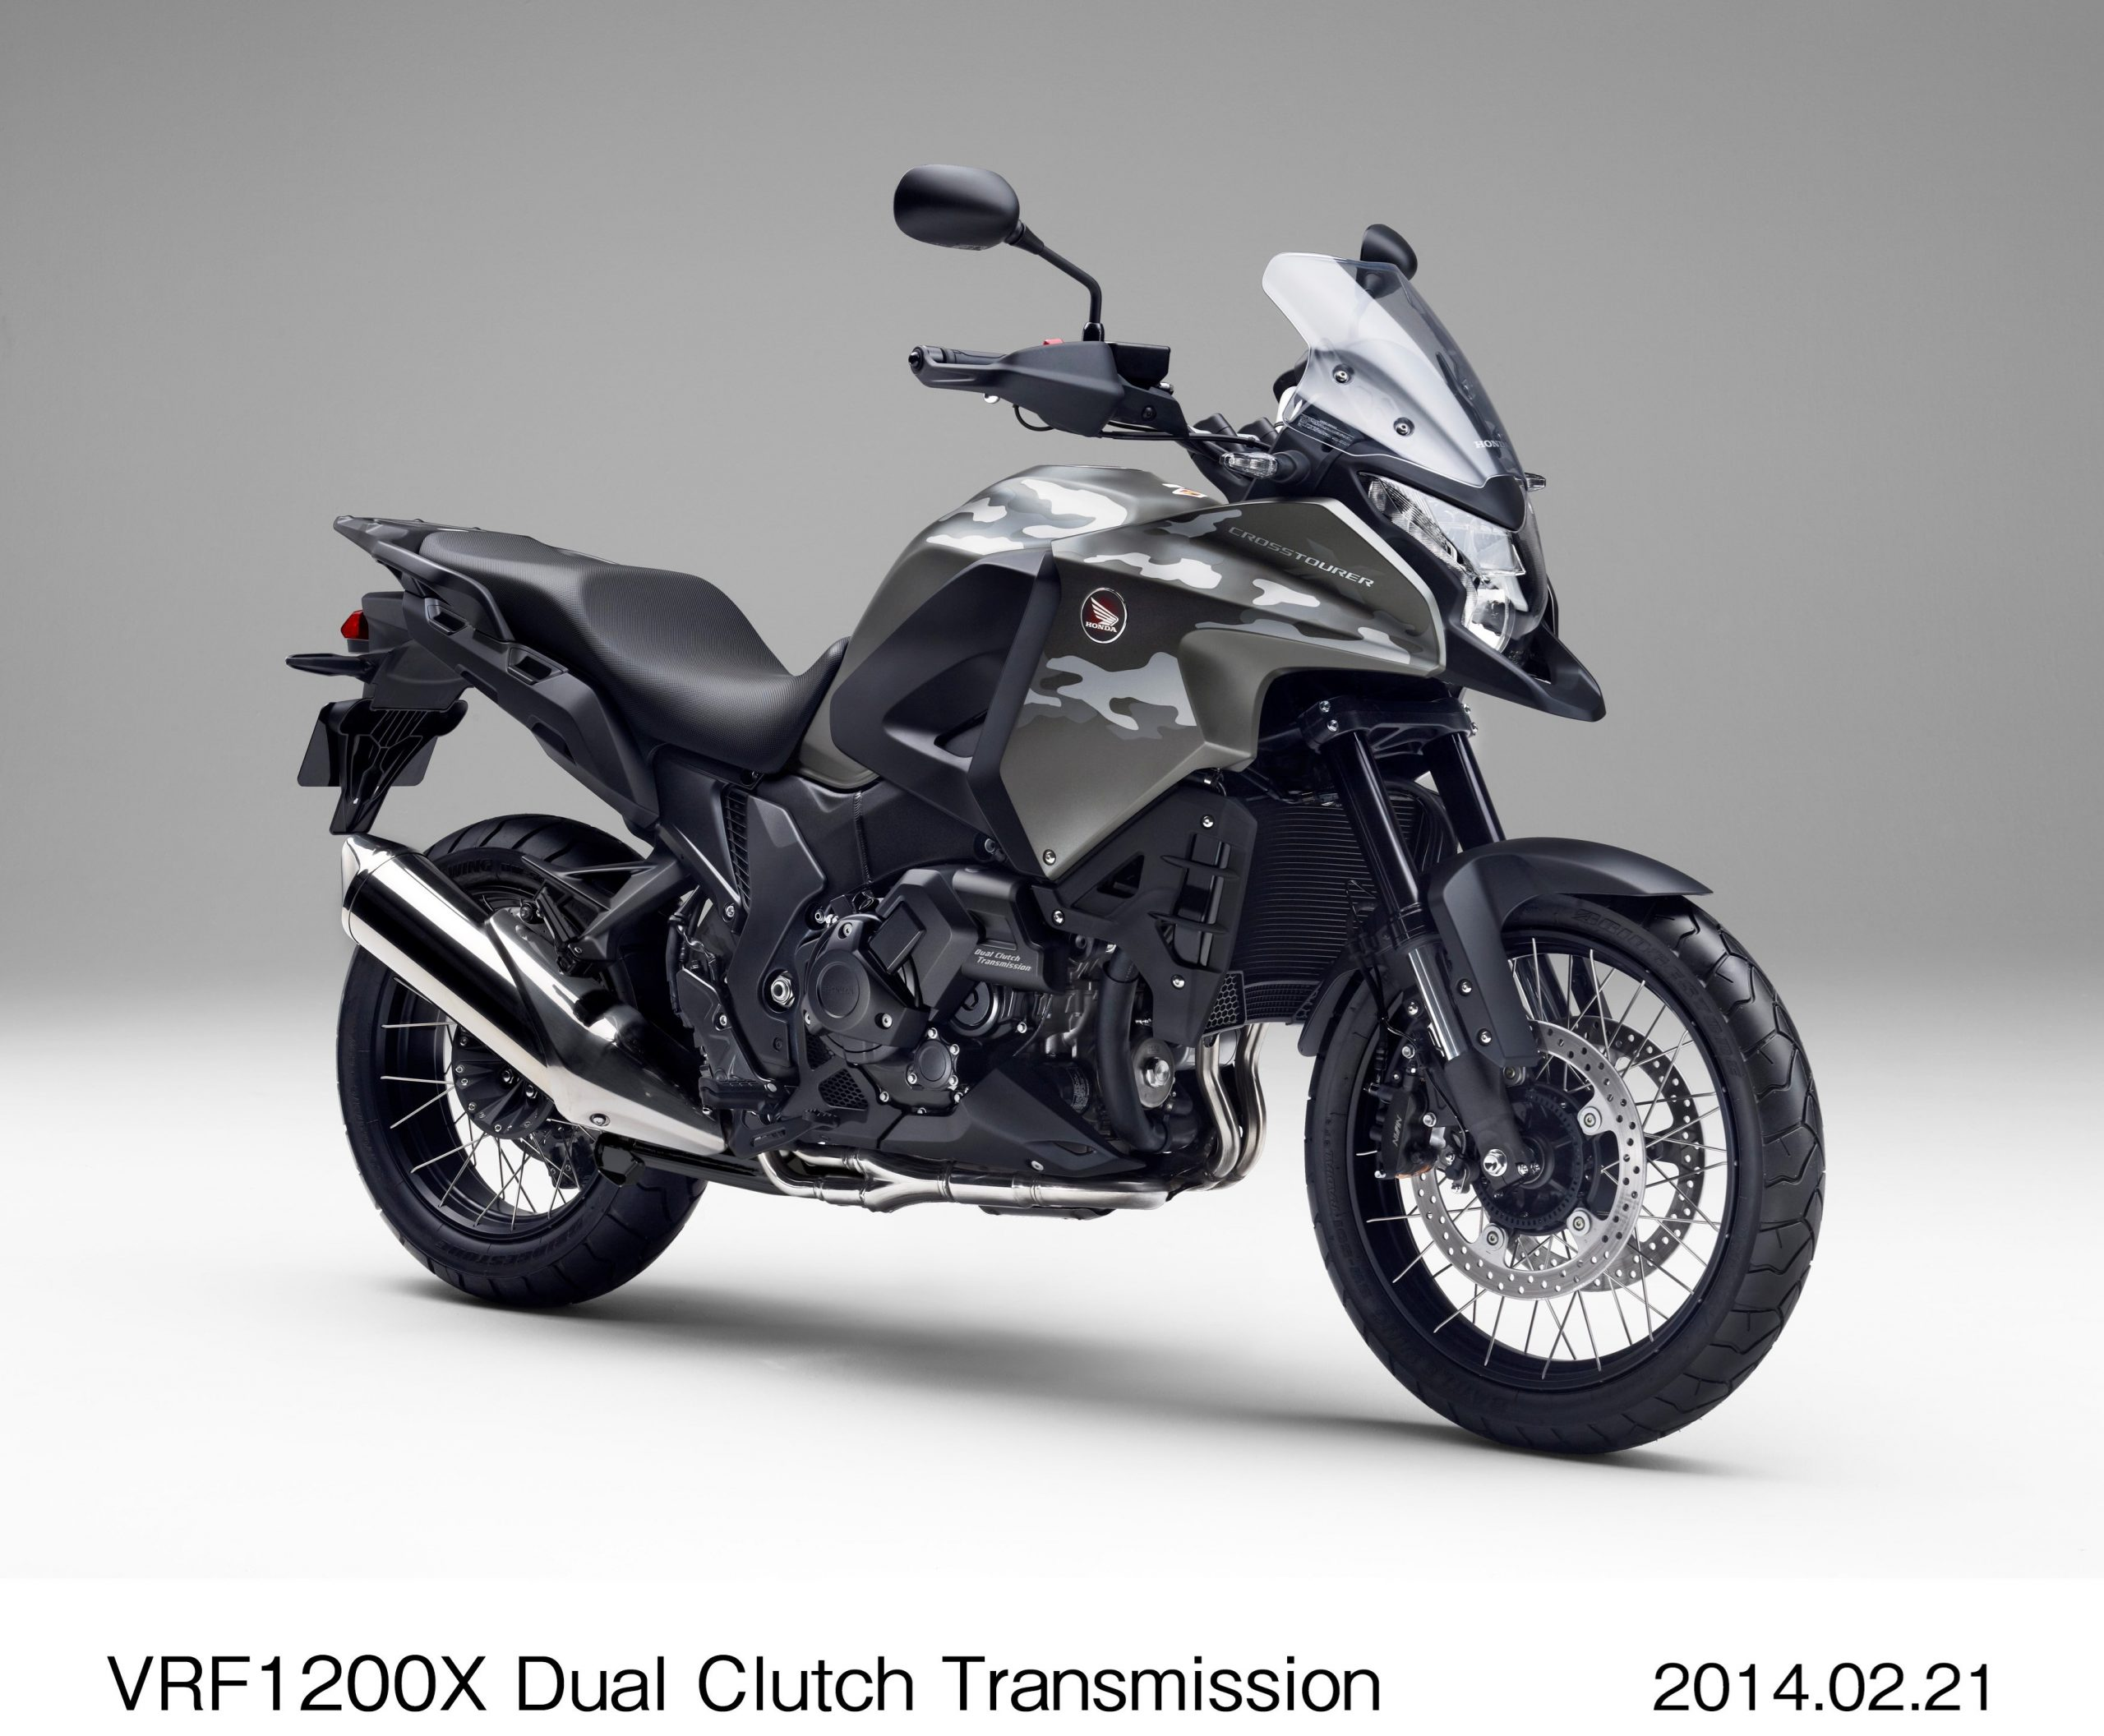 305920 Honda Reaches Ten Years Of Production Of Dual Clutch Transmission Scaled